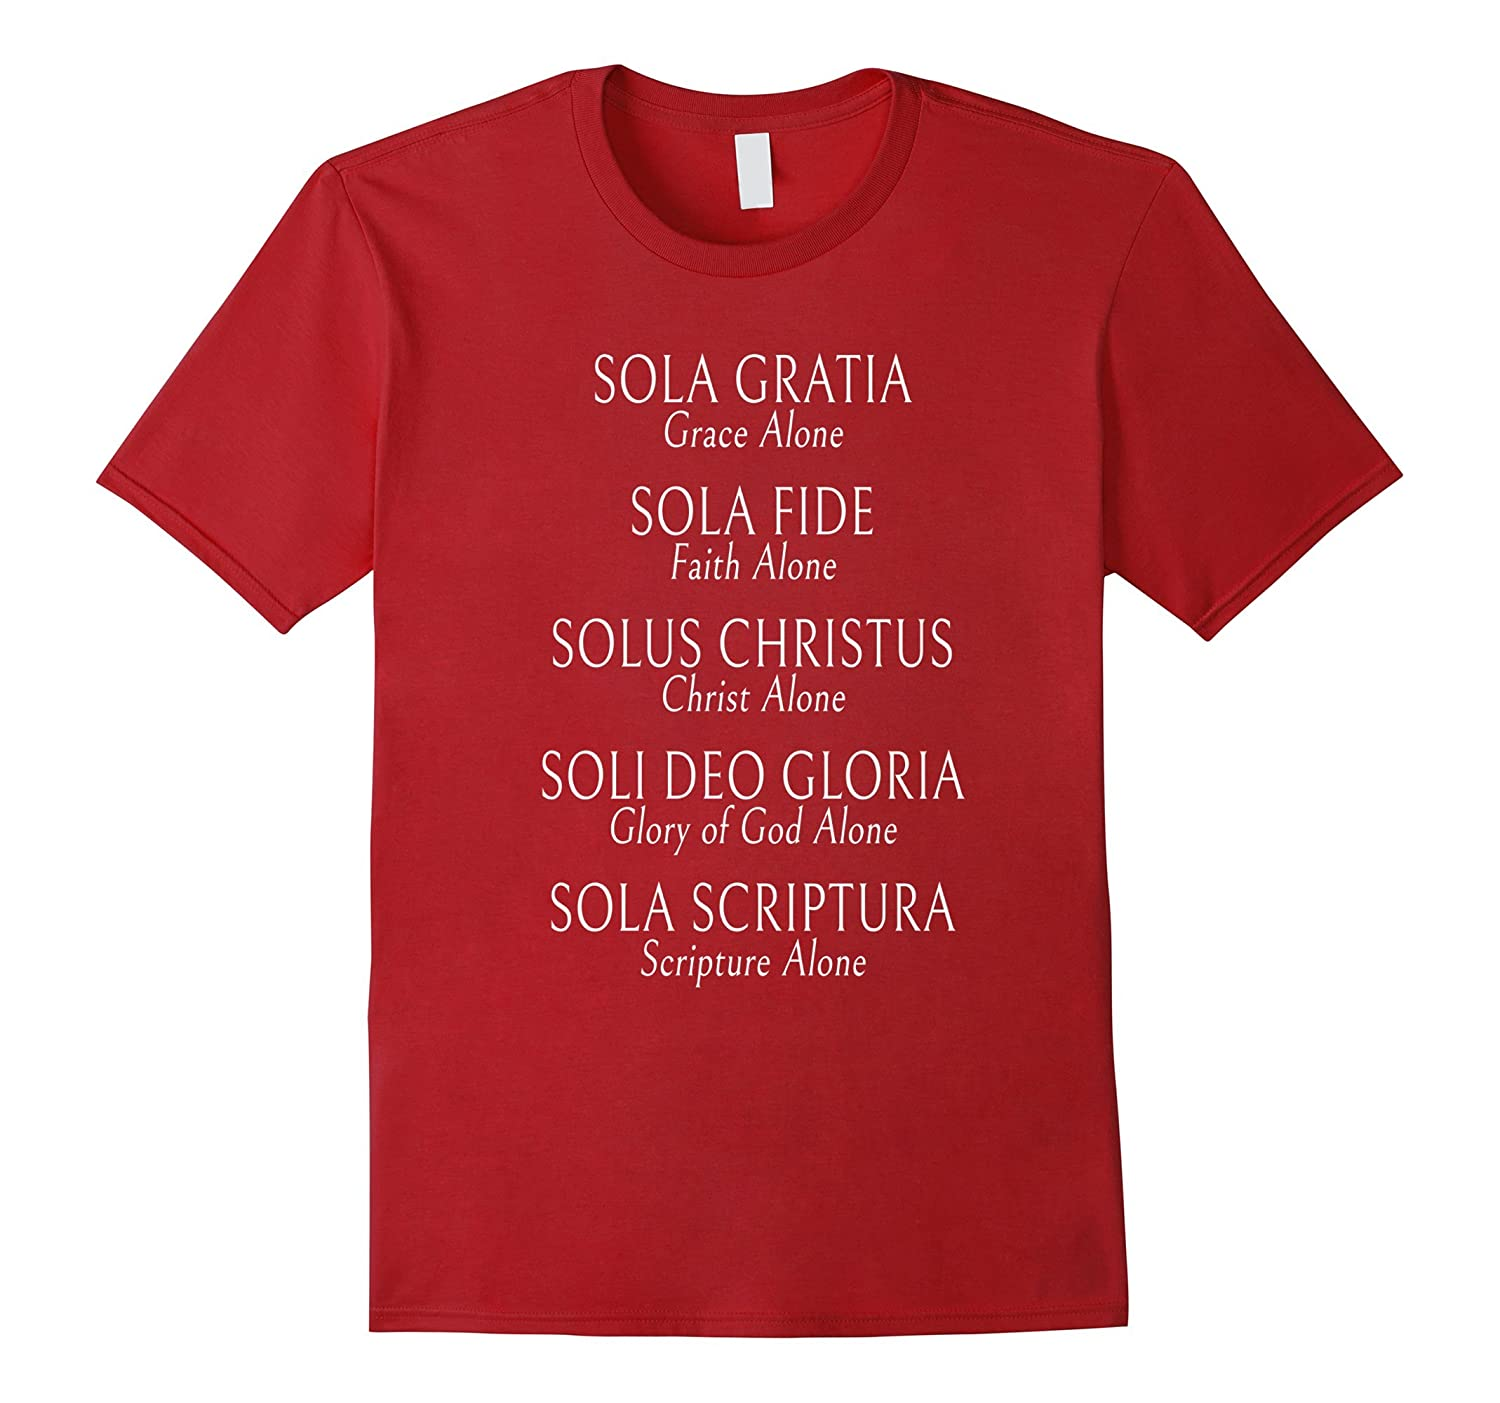 5 Solas T-Shirt Reformed T-Shirt Christian Theology Tee all